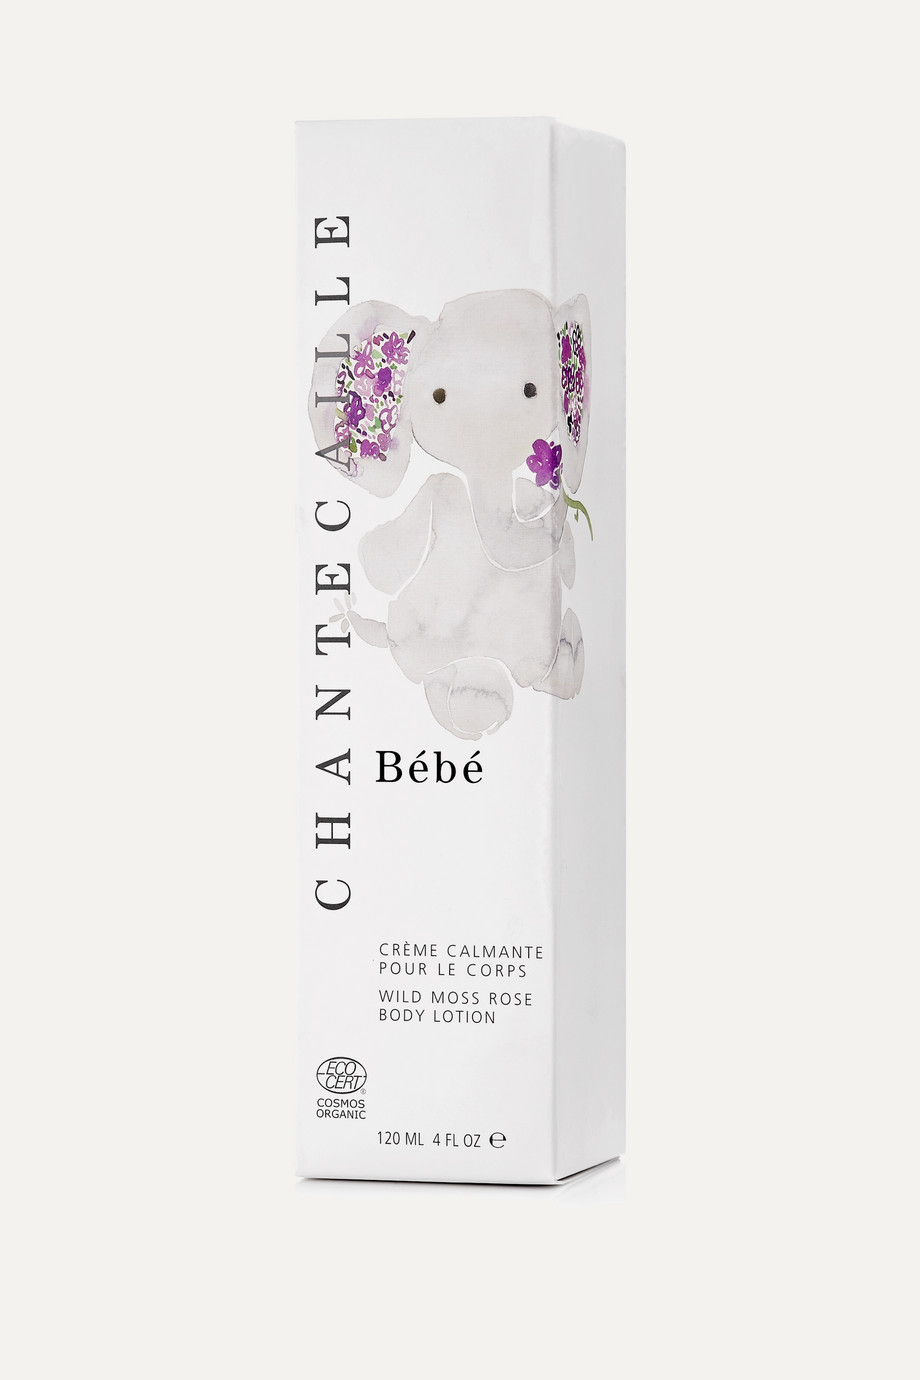 Chantecaille Bébé Wild Moss Rose Body Lotion, 120ml